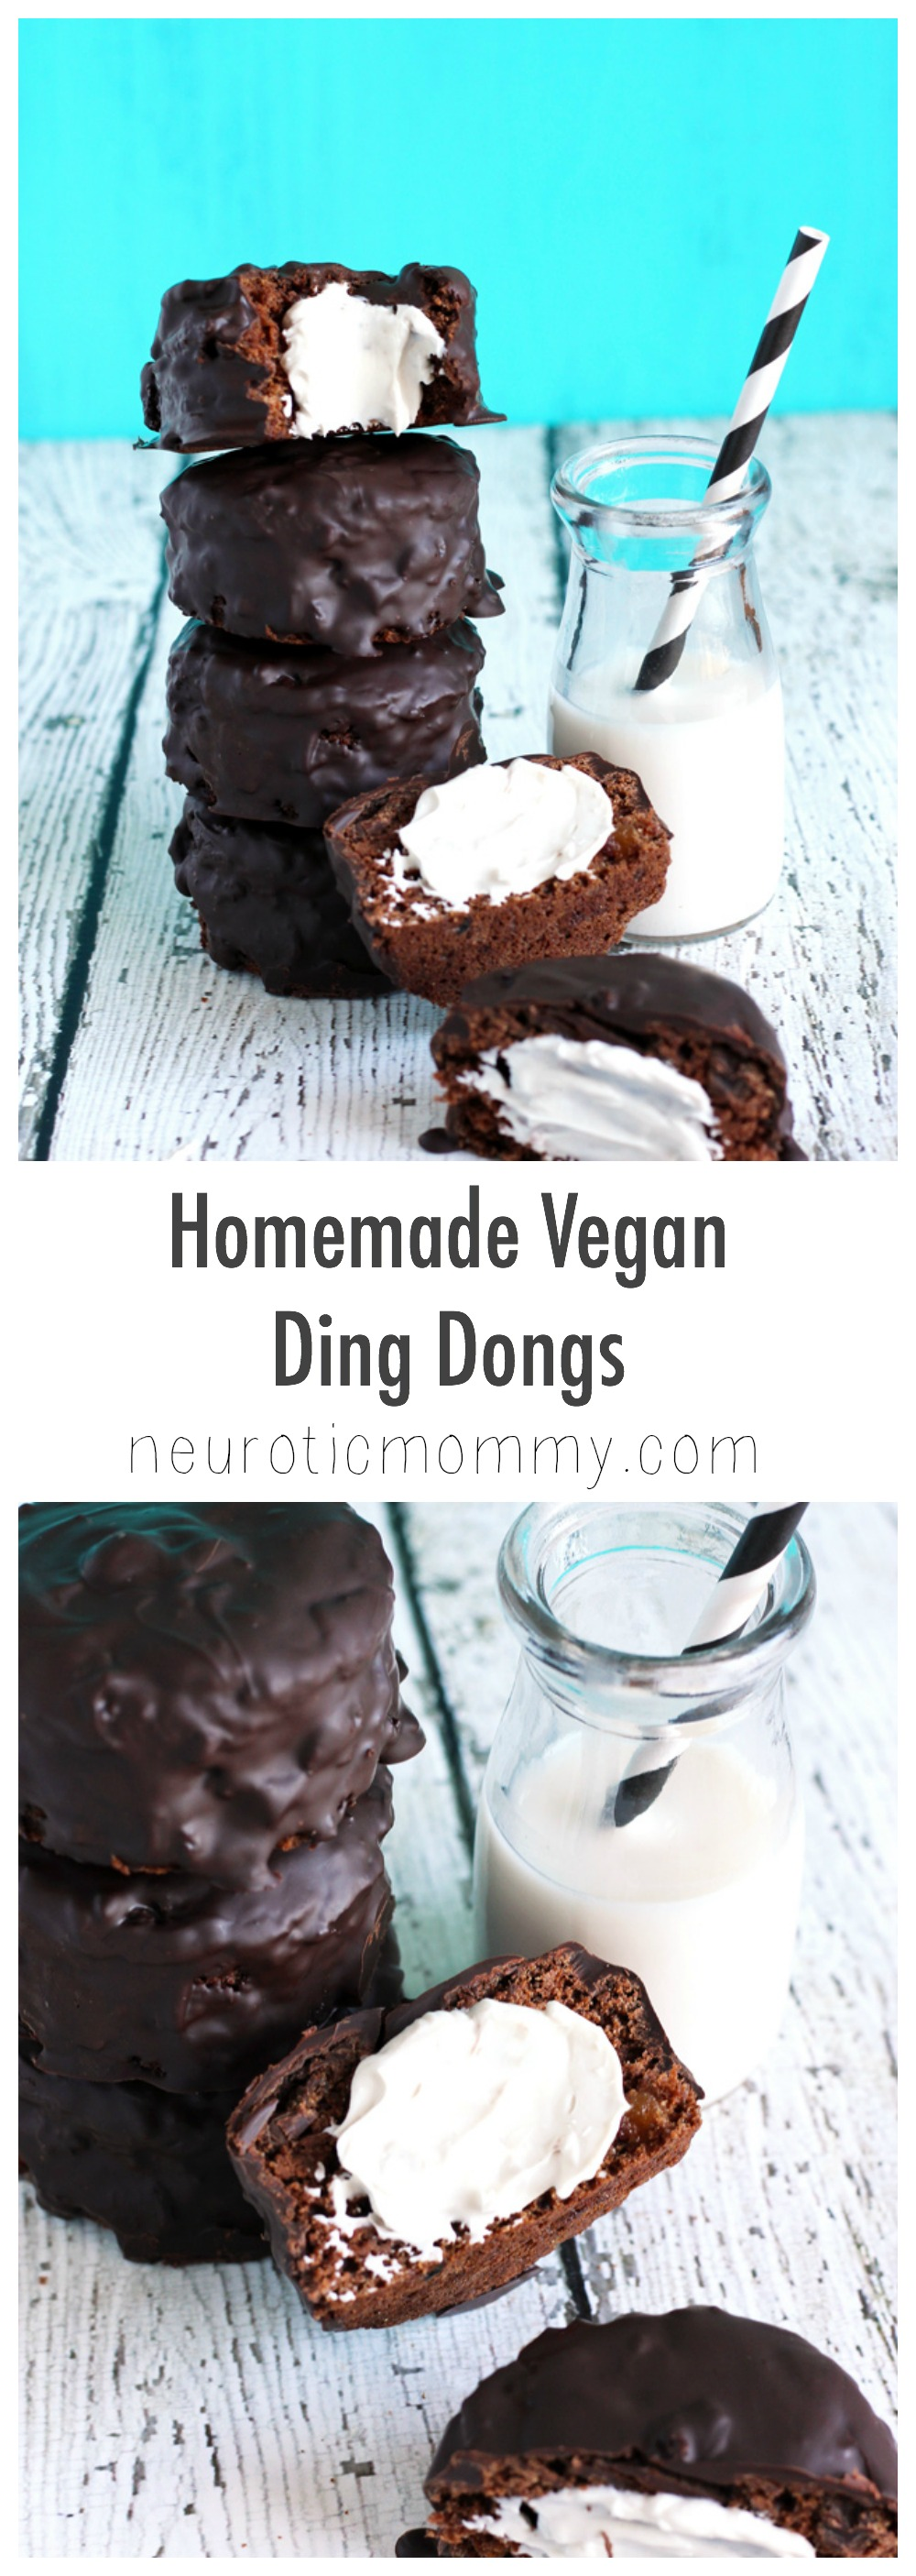 Outstanding Homemade Vegan Ding Dongs - Chocolate cakes with a cream filling and a dark chocolate coating. Not only are they vegan, they're good for you. NeuroticMommy.com #vegan #healthy #cakes